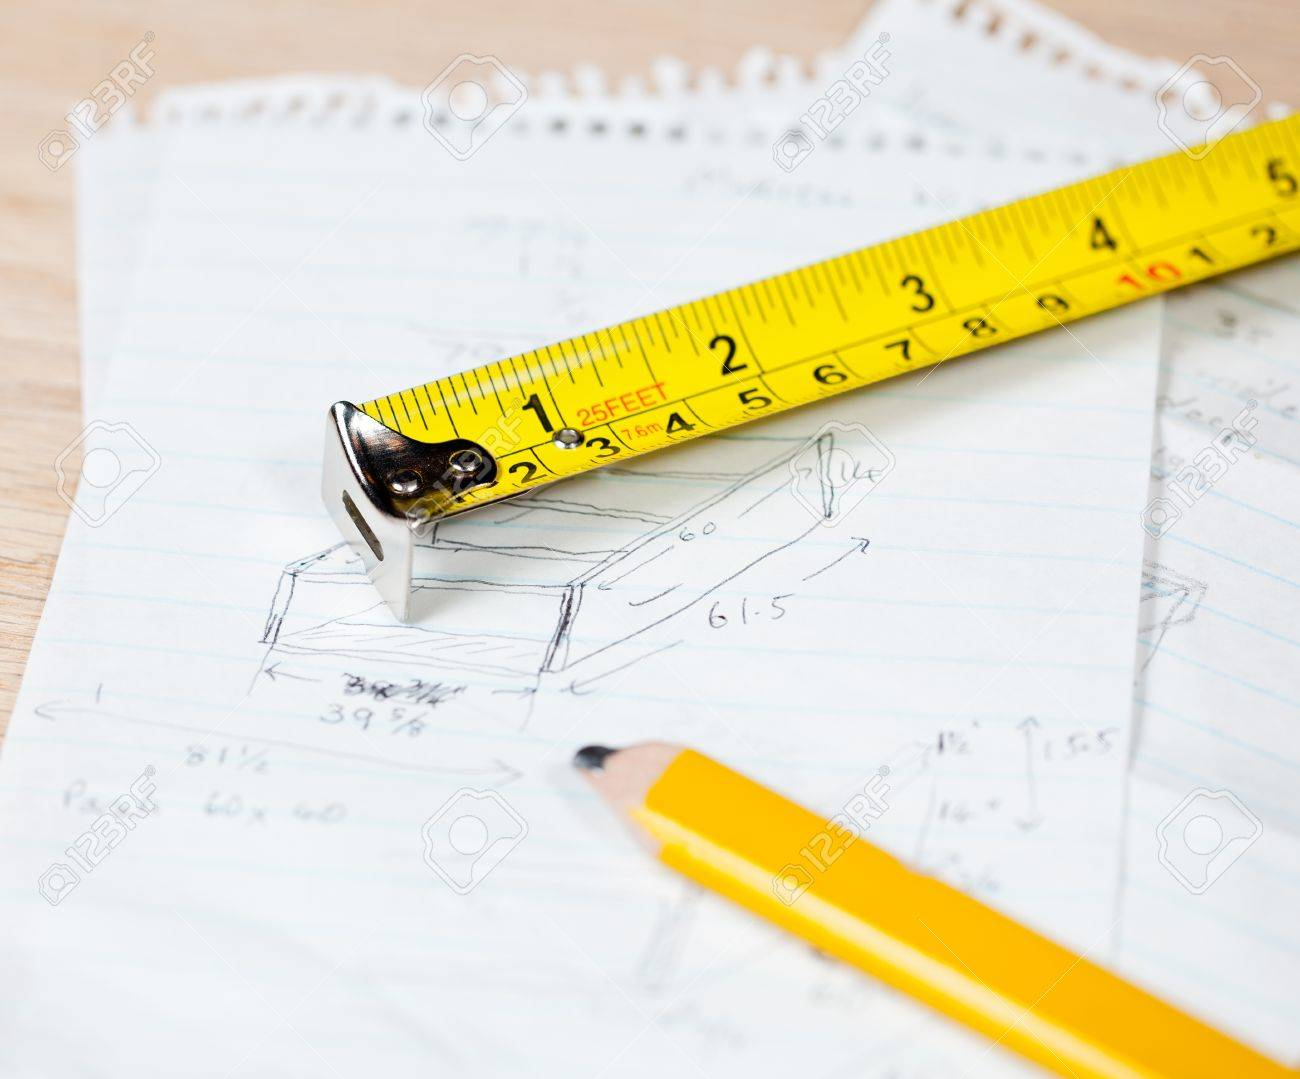 Tape measure and pencil laying on plans for a woodworking project Stock Photo - 11526623